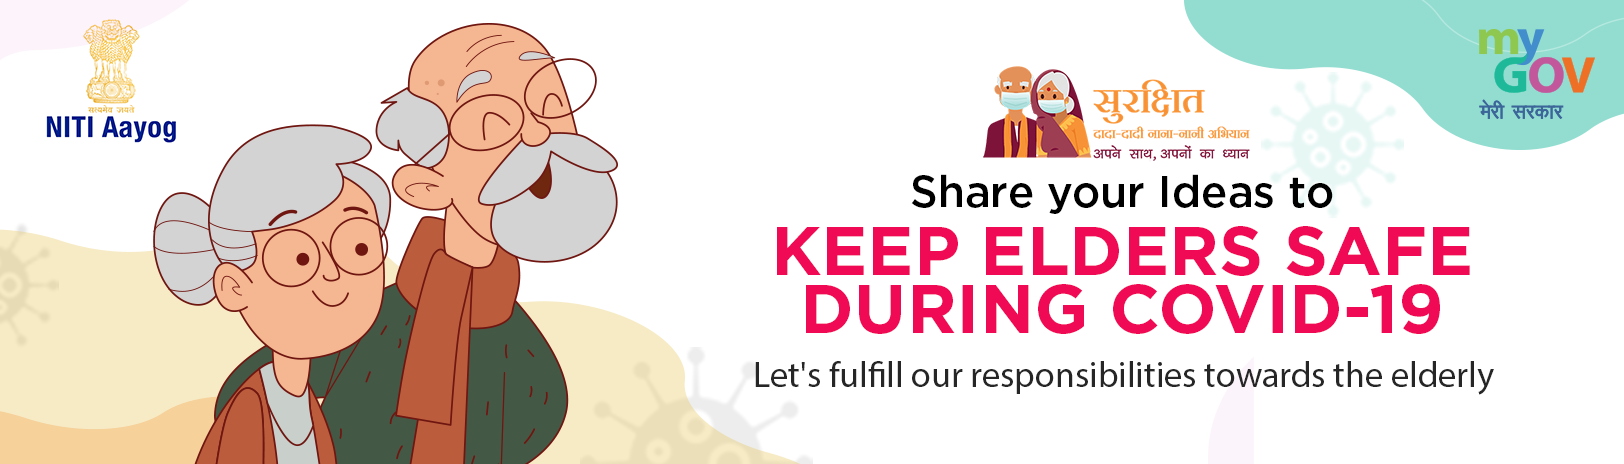 Share Your Ideas to Keep Elders Safe During COVID-19